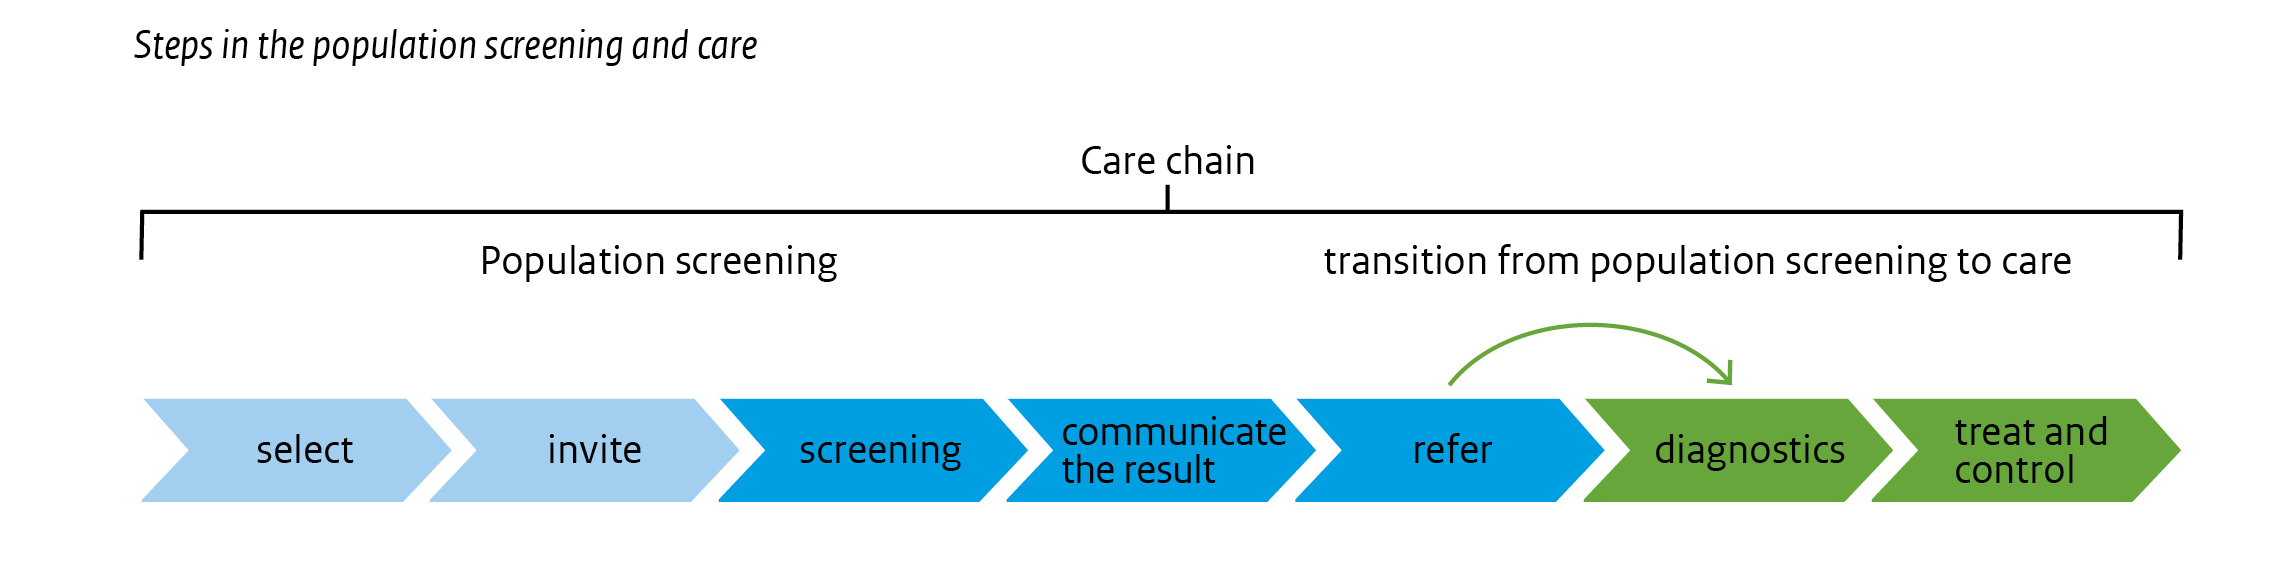 The image Care chain shows the steps in cancer screening and the connecting relation with health care. The selection of the target population, the invitation, screening itself and the communication of the test results are all part of the screening. The diagnostics, treatment and control process are part of the health care.